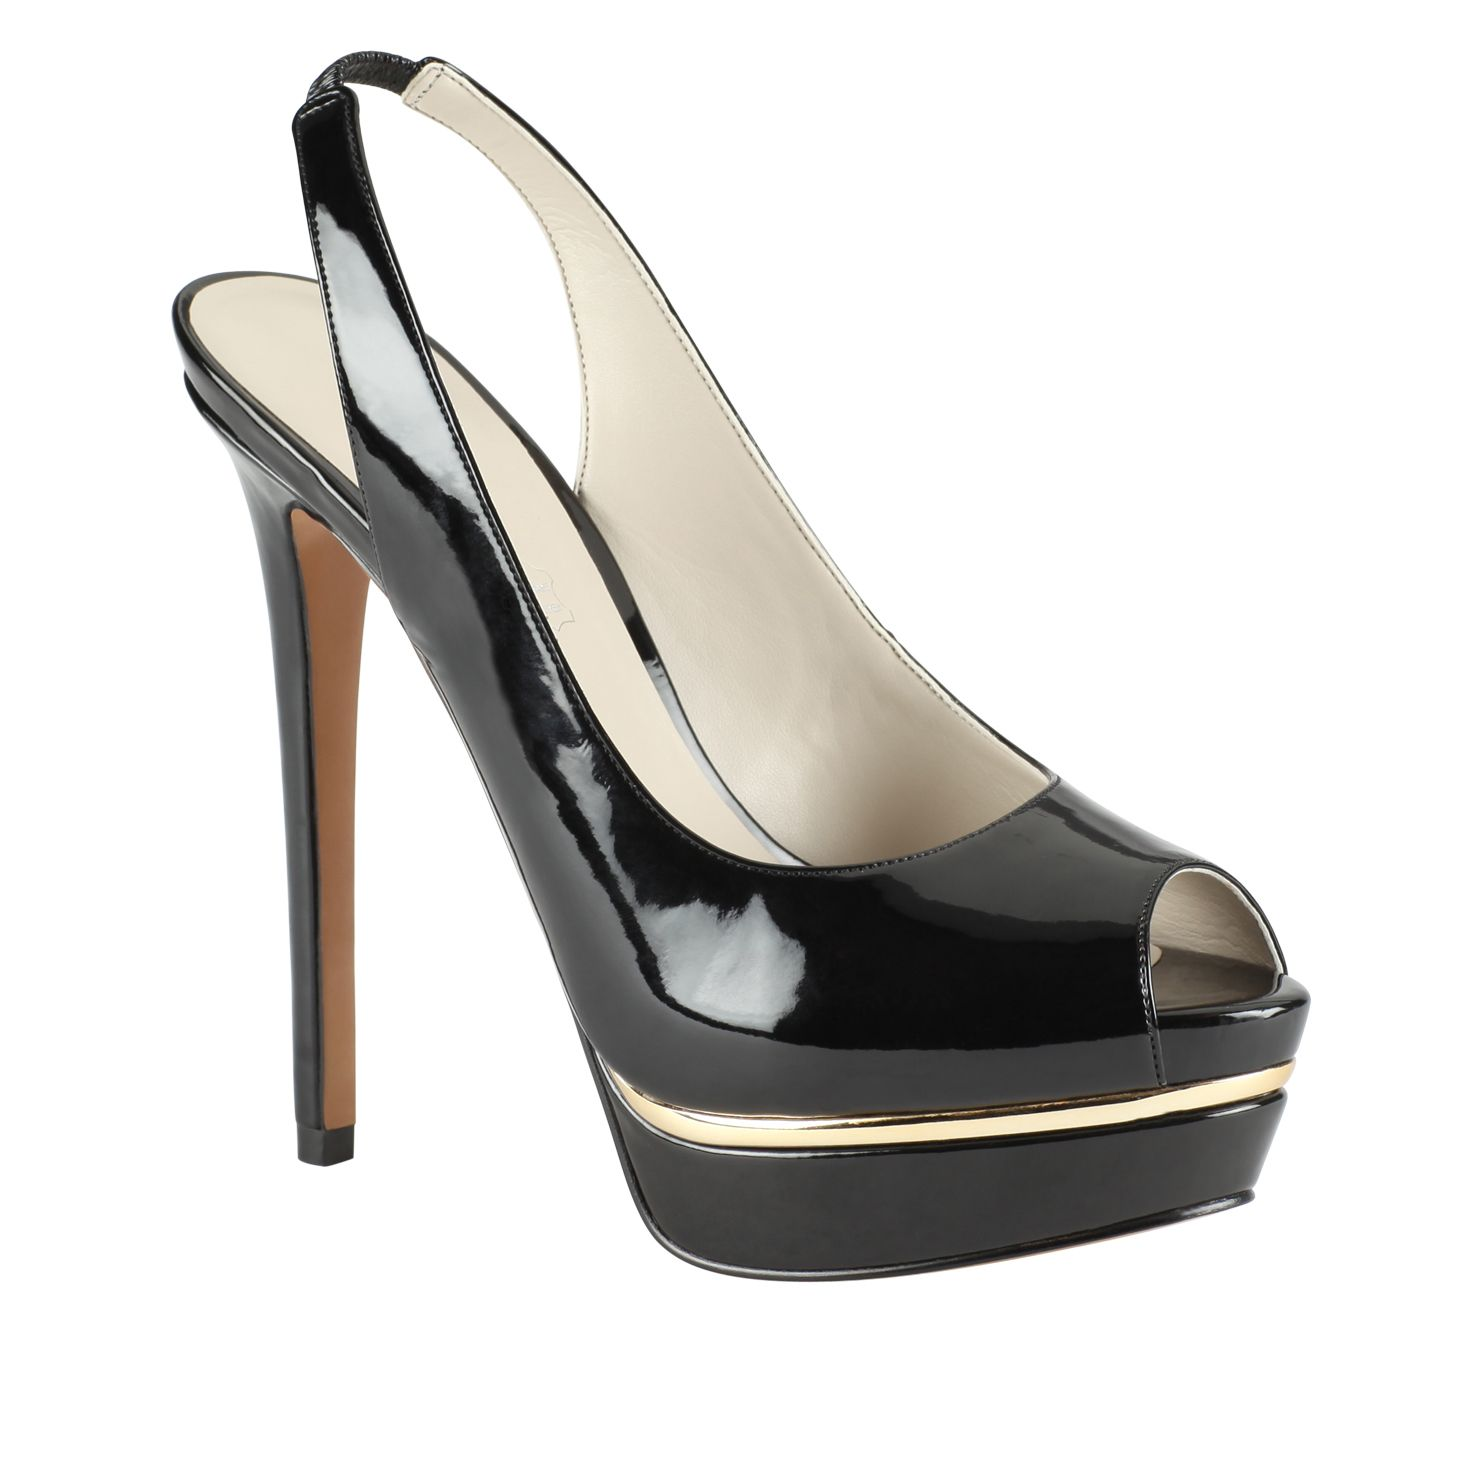 Mesiano platform peep toe court shoes